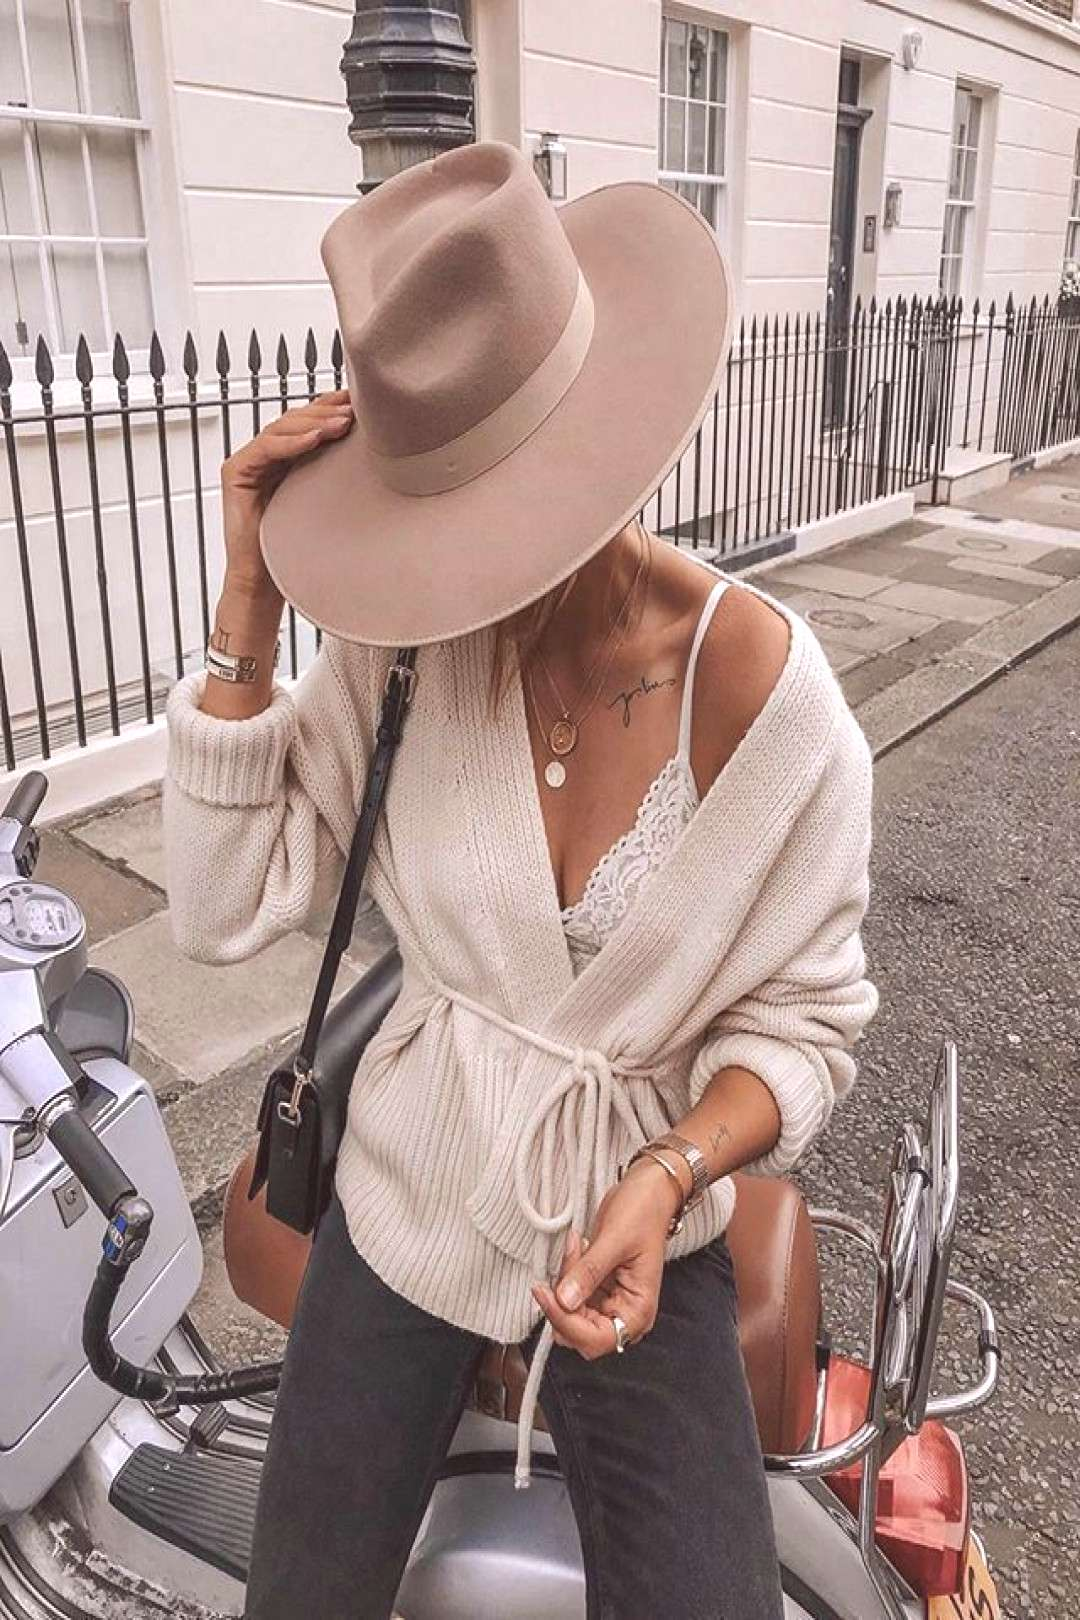 Zulu Rancher in 2020 | Style, Outfits with hats, Informal fall outfits